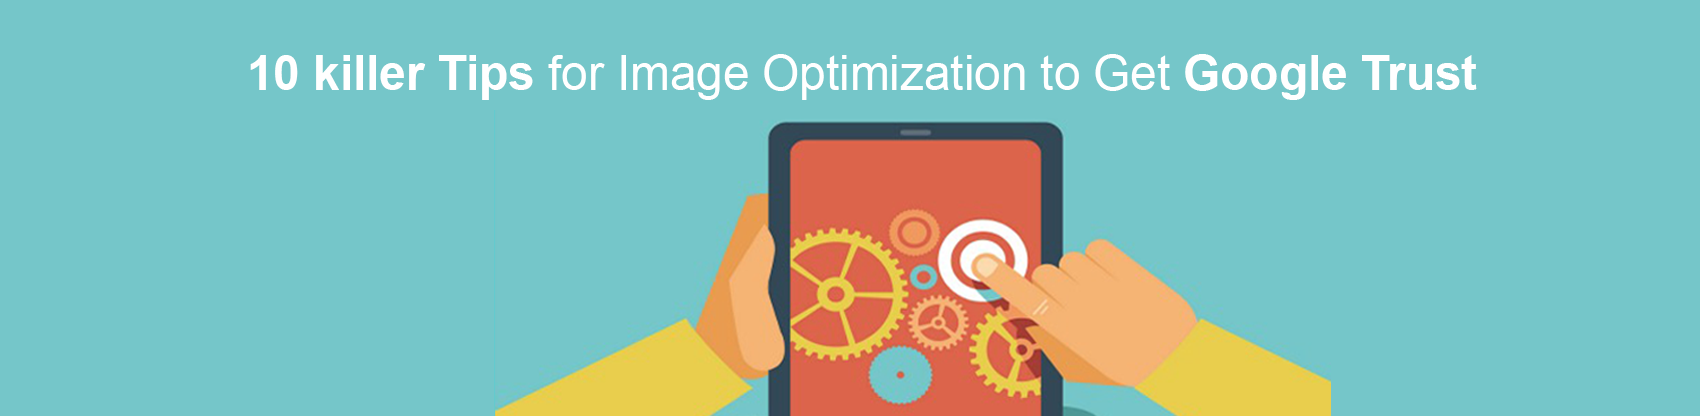 10 Killer Tips for Image Optimization to Get Google Trust